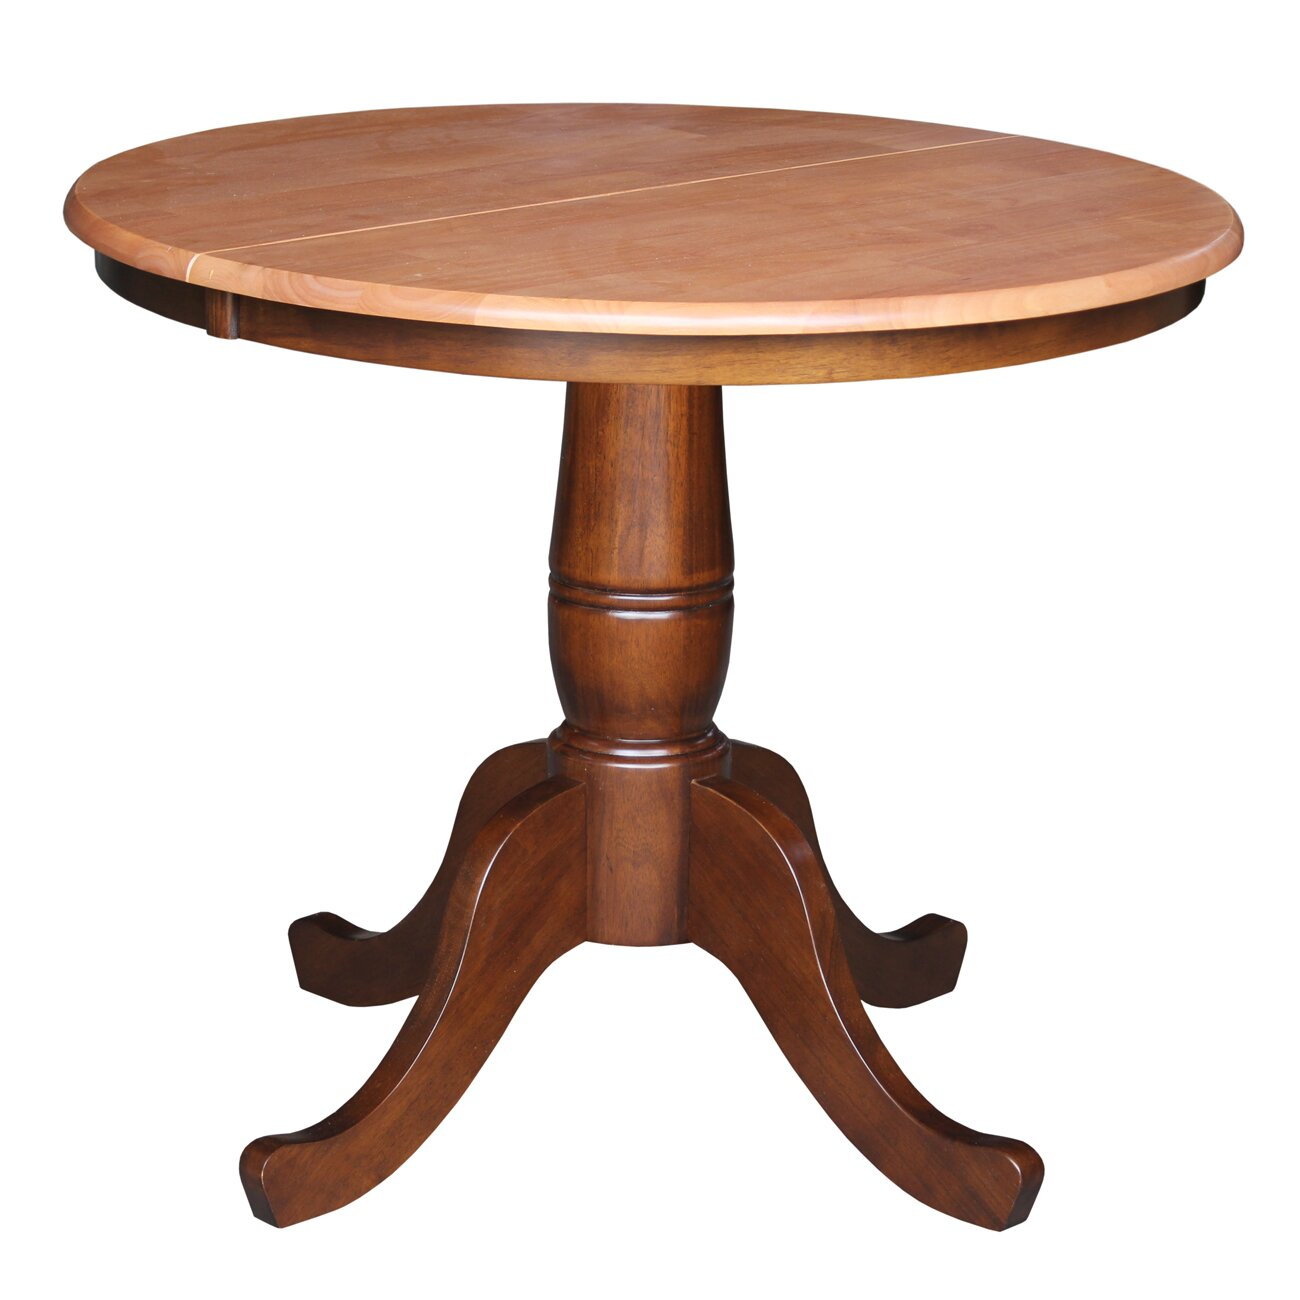 Comforter 36 Extendable Round Pedestal Dining Table By August Grove